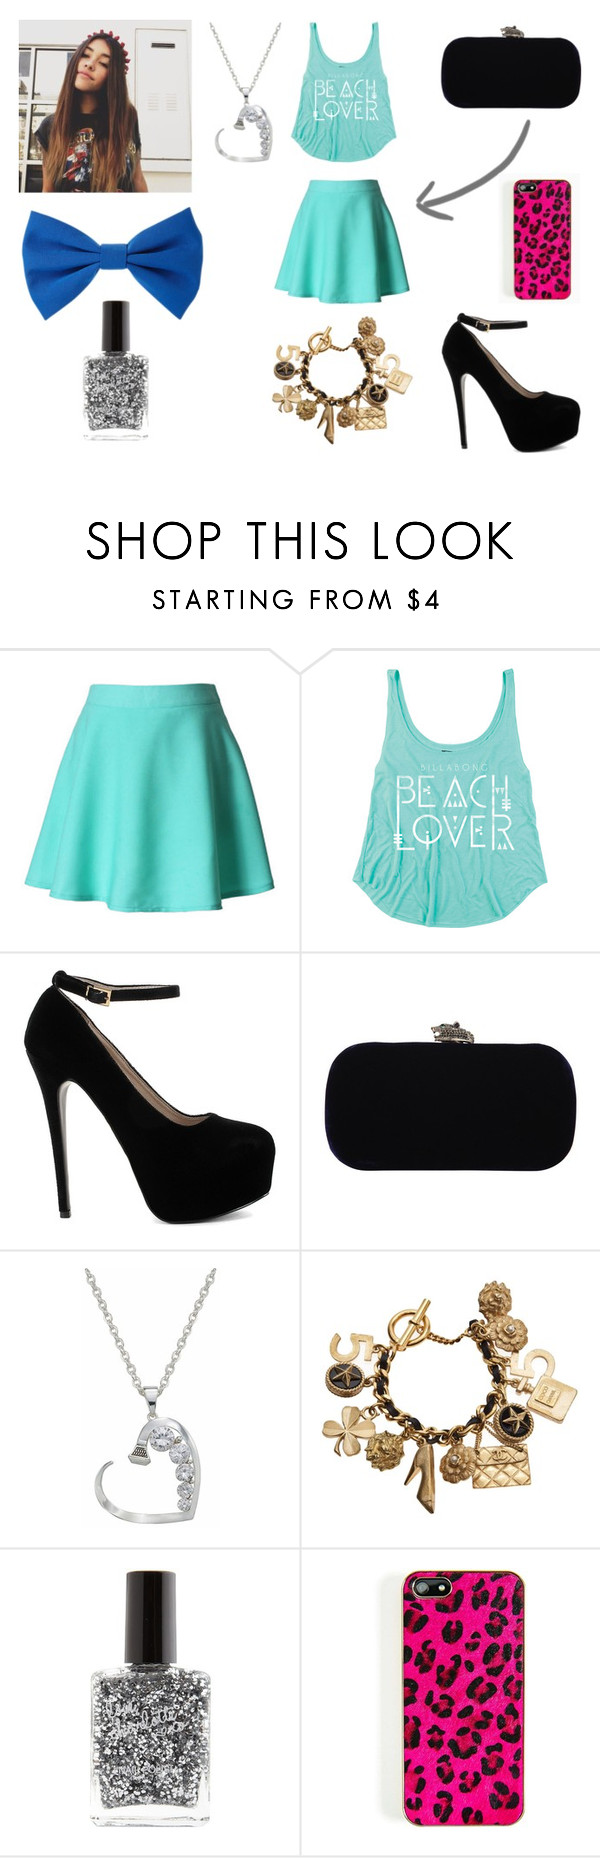 """MADISON BEER"" by carolina-otarola-xx ❤ liked on Polyvore featuring OPTIONS, House of Harlow 1960, Chanel, Charlotte Russe and Forever 21"